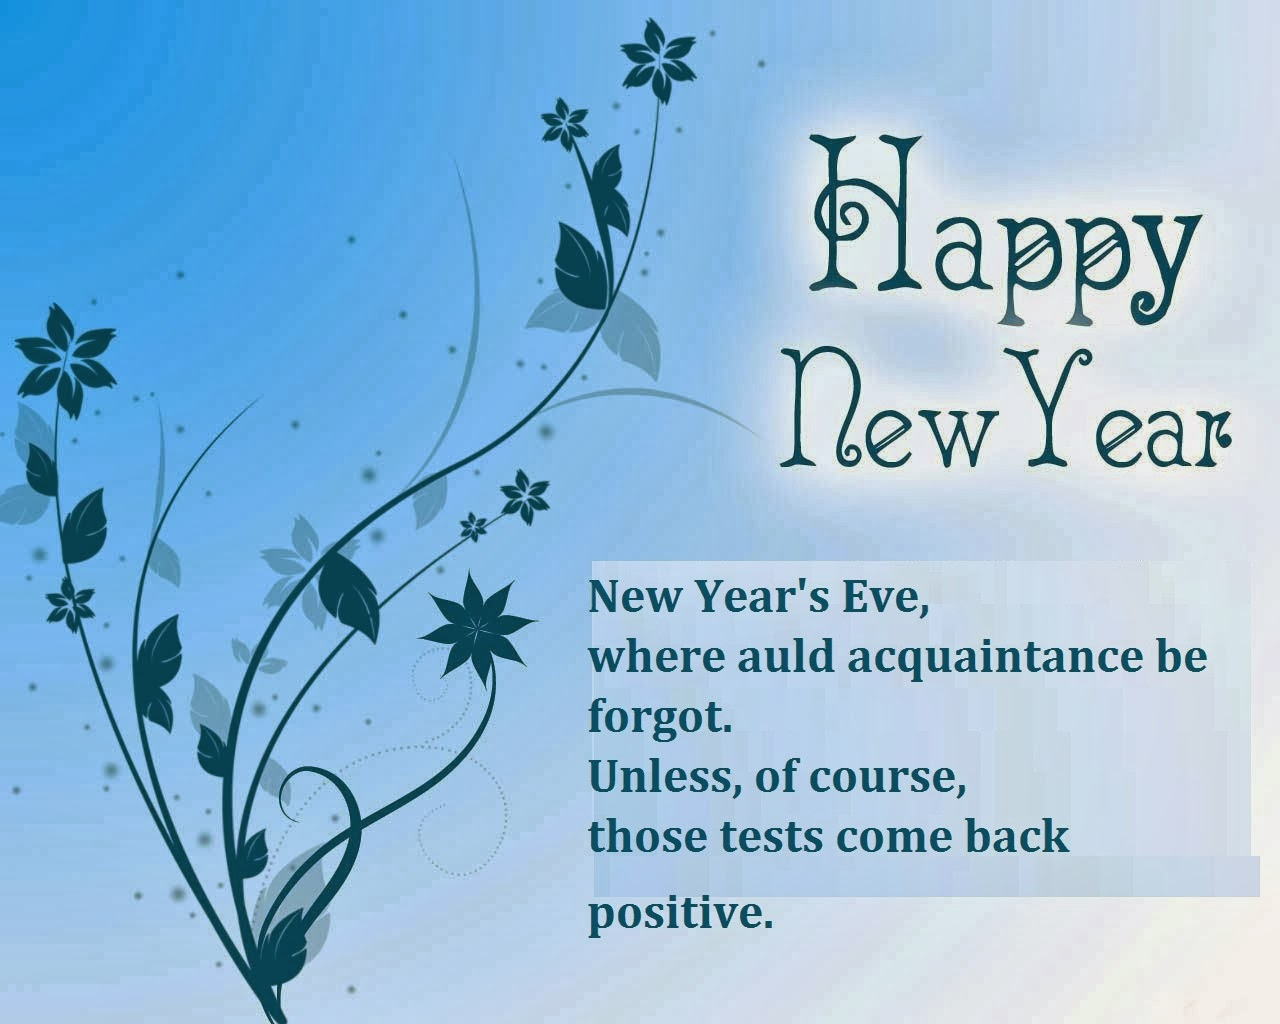 New year sms 2014 greetings wishes messages page 3 of 5 jhang tv new year greetings with quotes for facebook friends kristyandbryce Choice Image